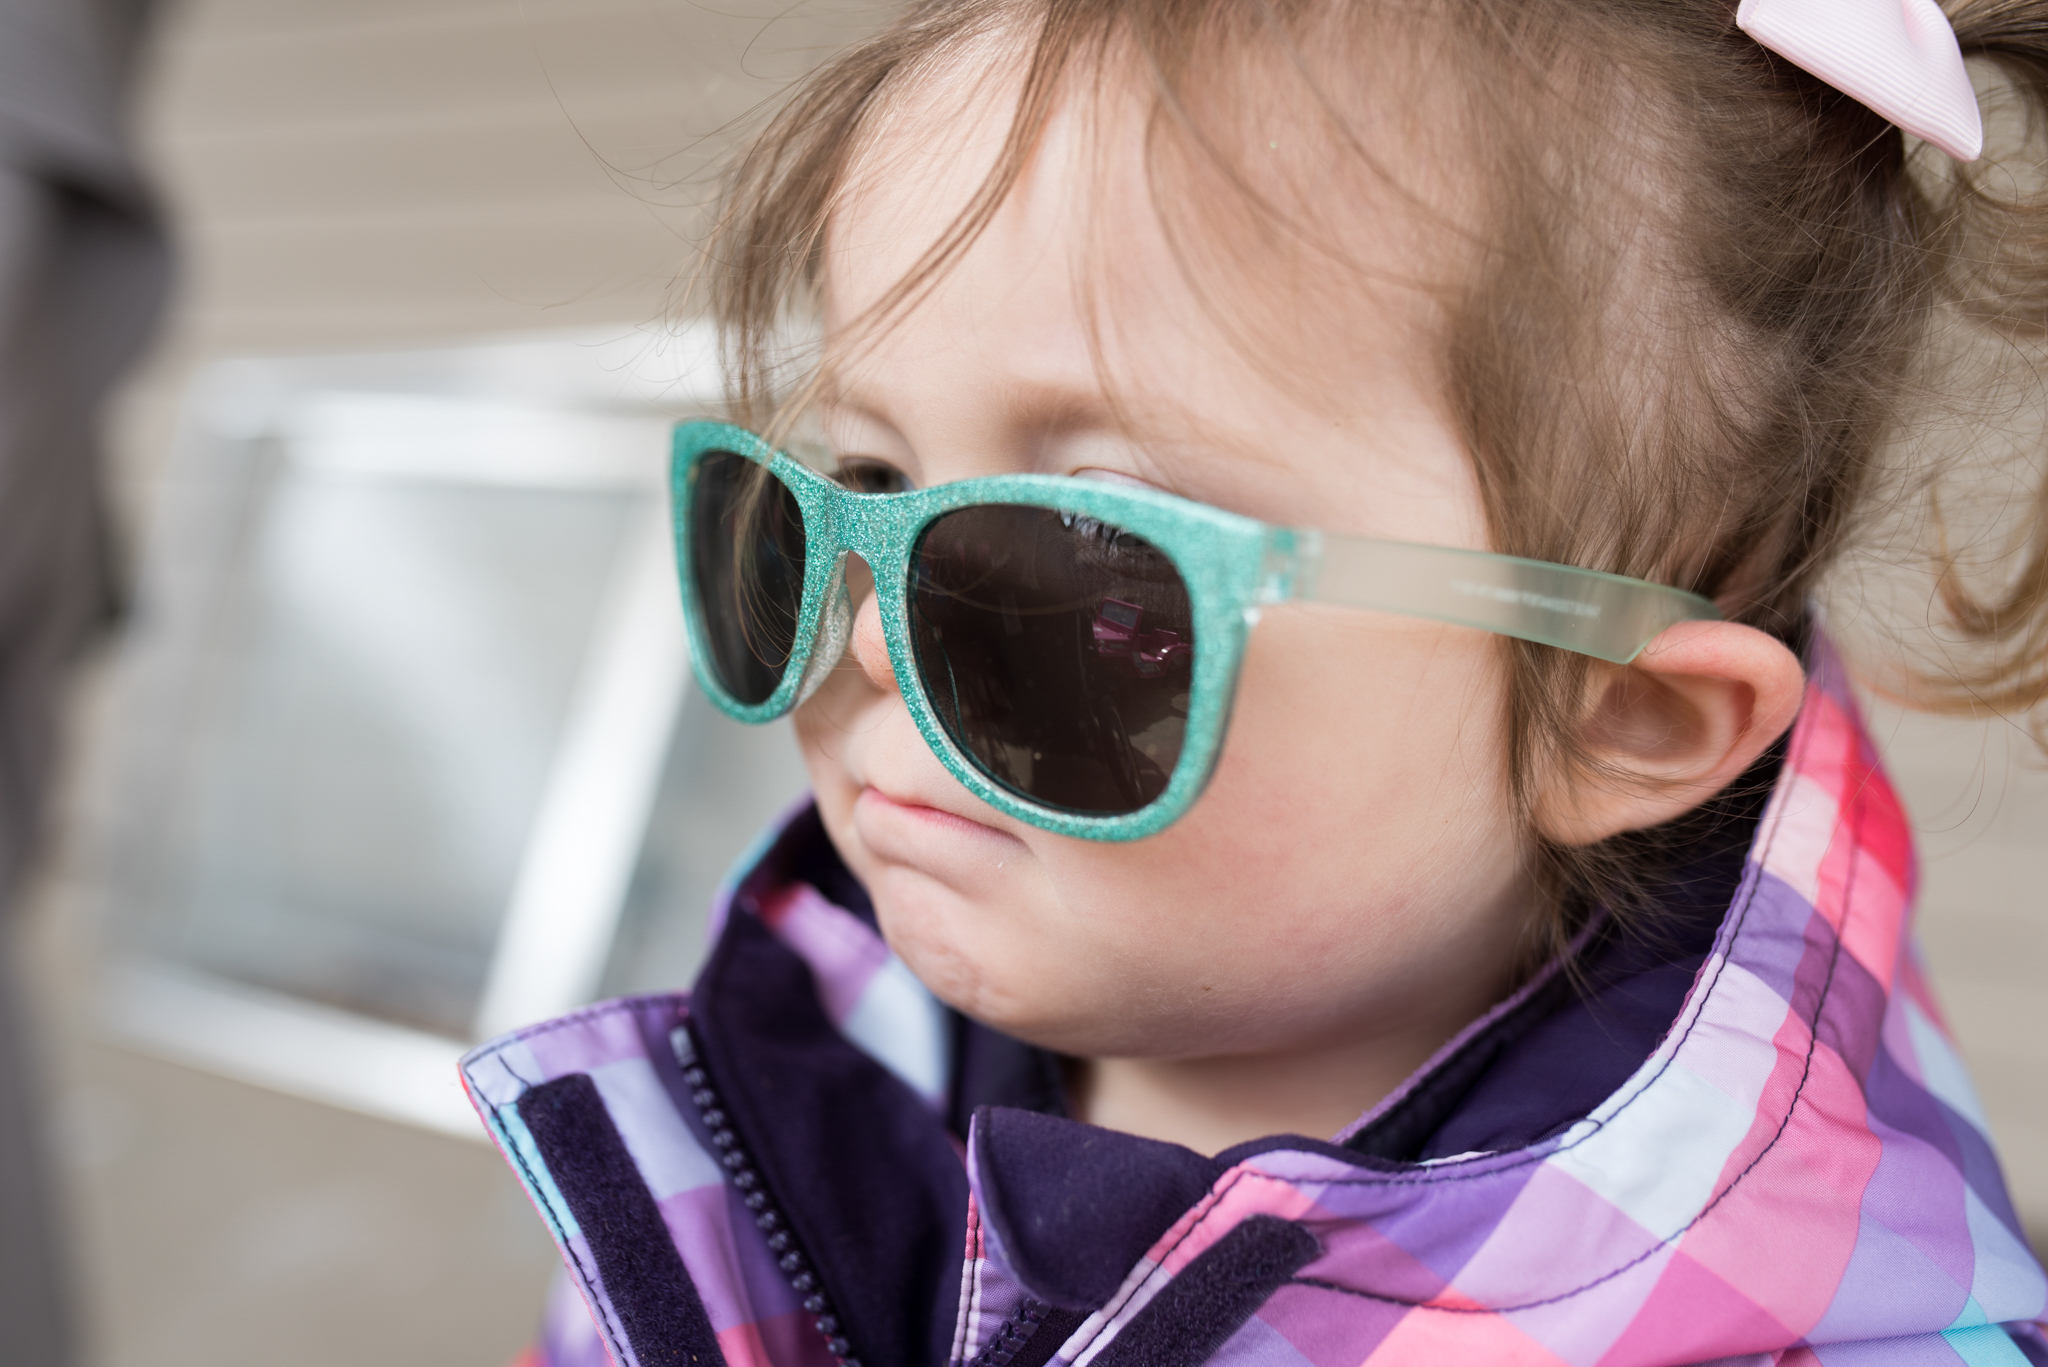 Young girl wearing pig tails and blue sunglasses